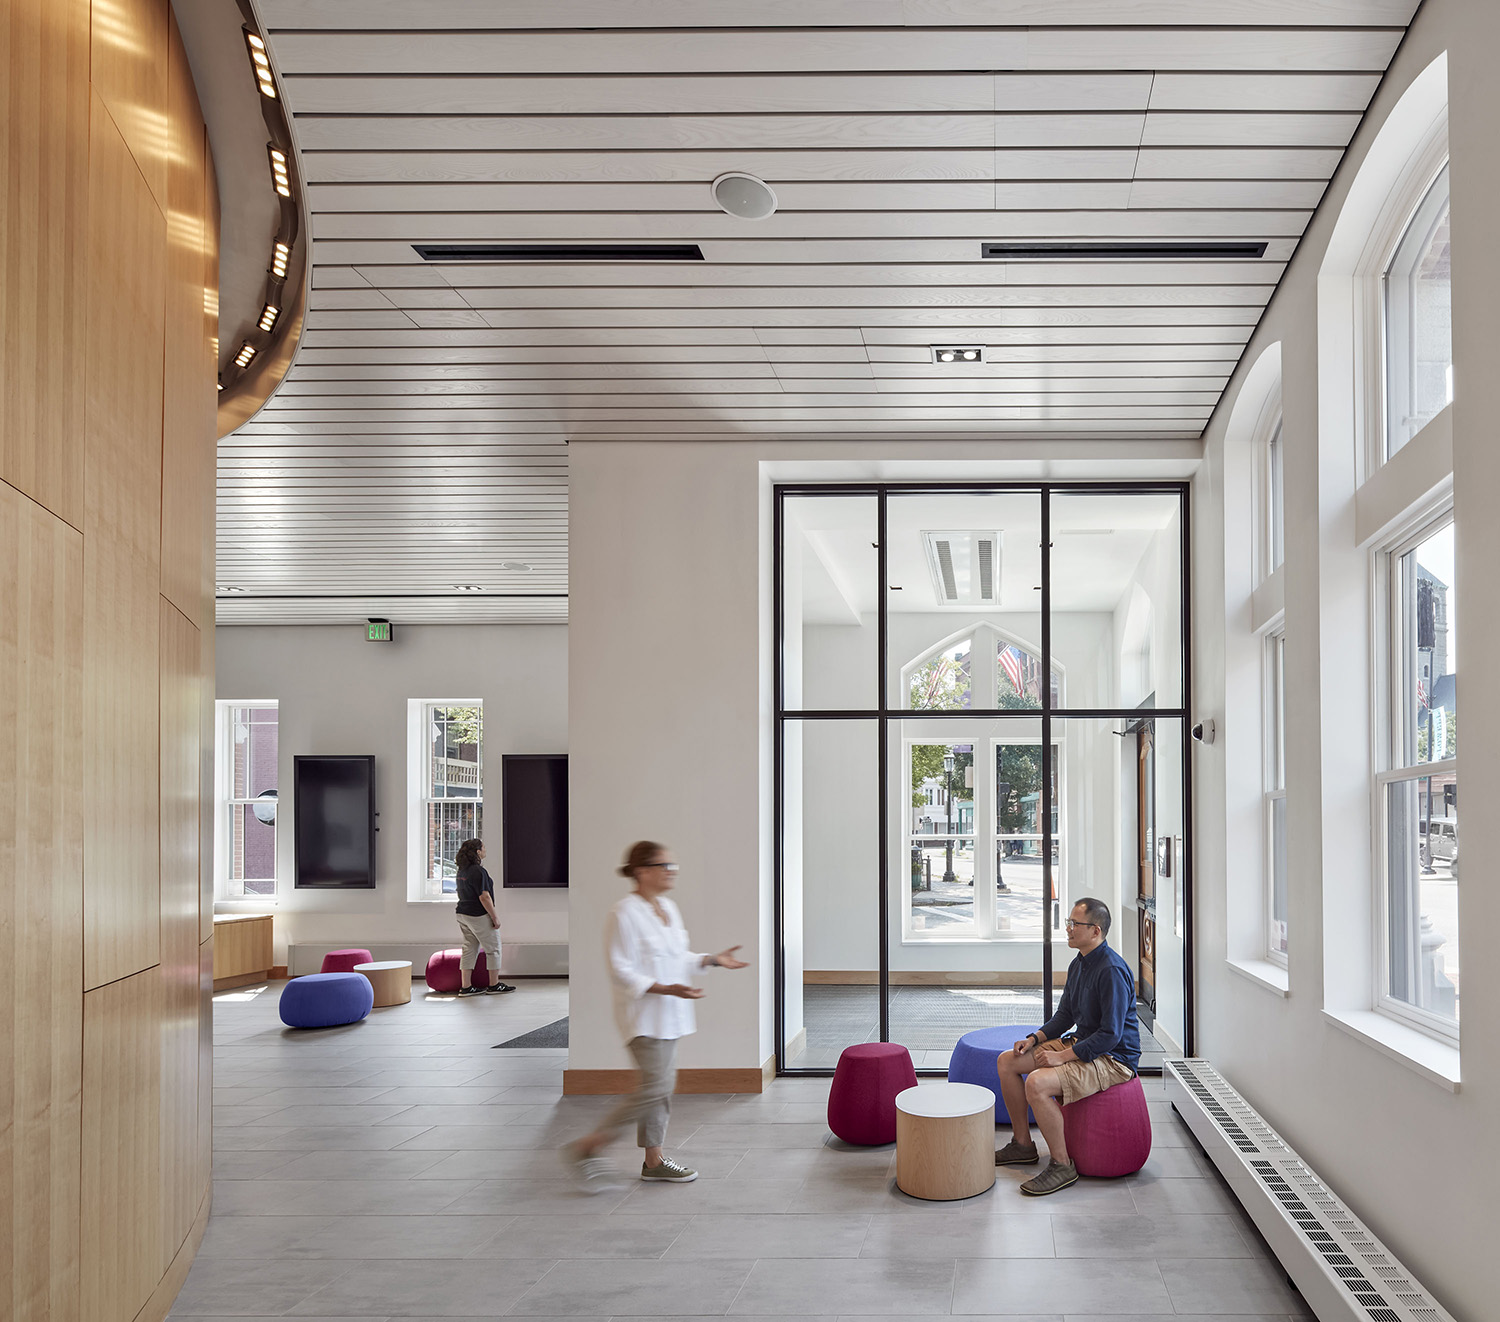 The lobby is bright and airy with informal seating areas Robert Benson